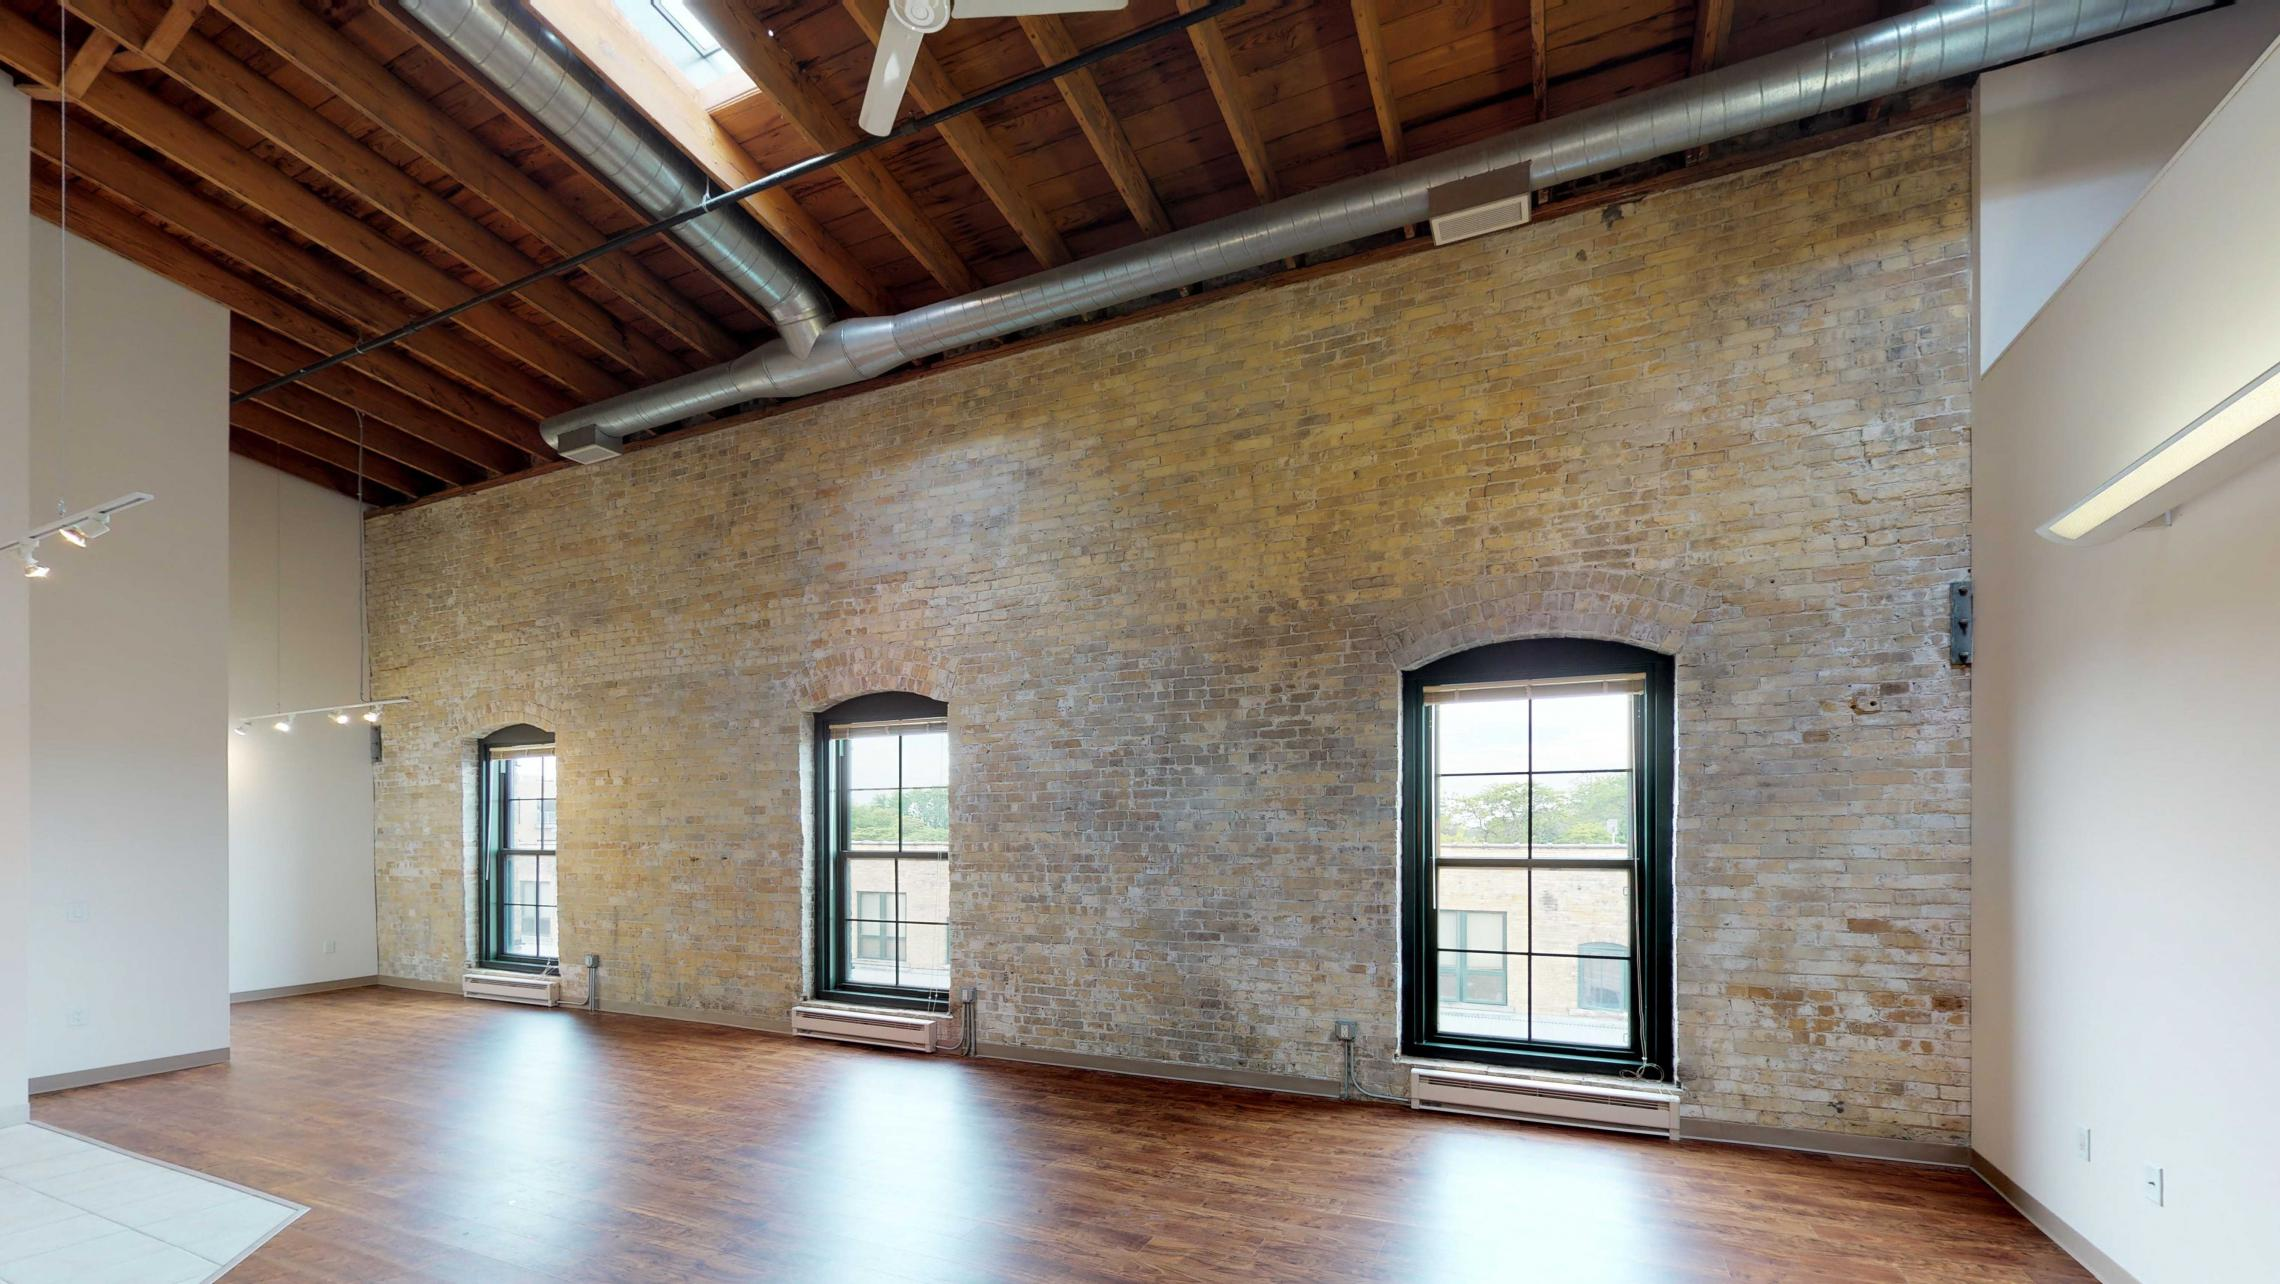 Tobacco-Lofts-Apartment-E306-Lofted-Two-Bedrom-Downtown-Madison-Exposures-Design-Historic-Yards.jpg